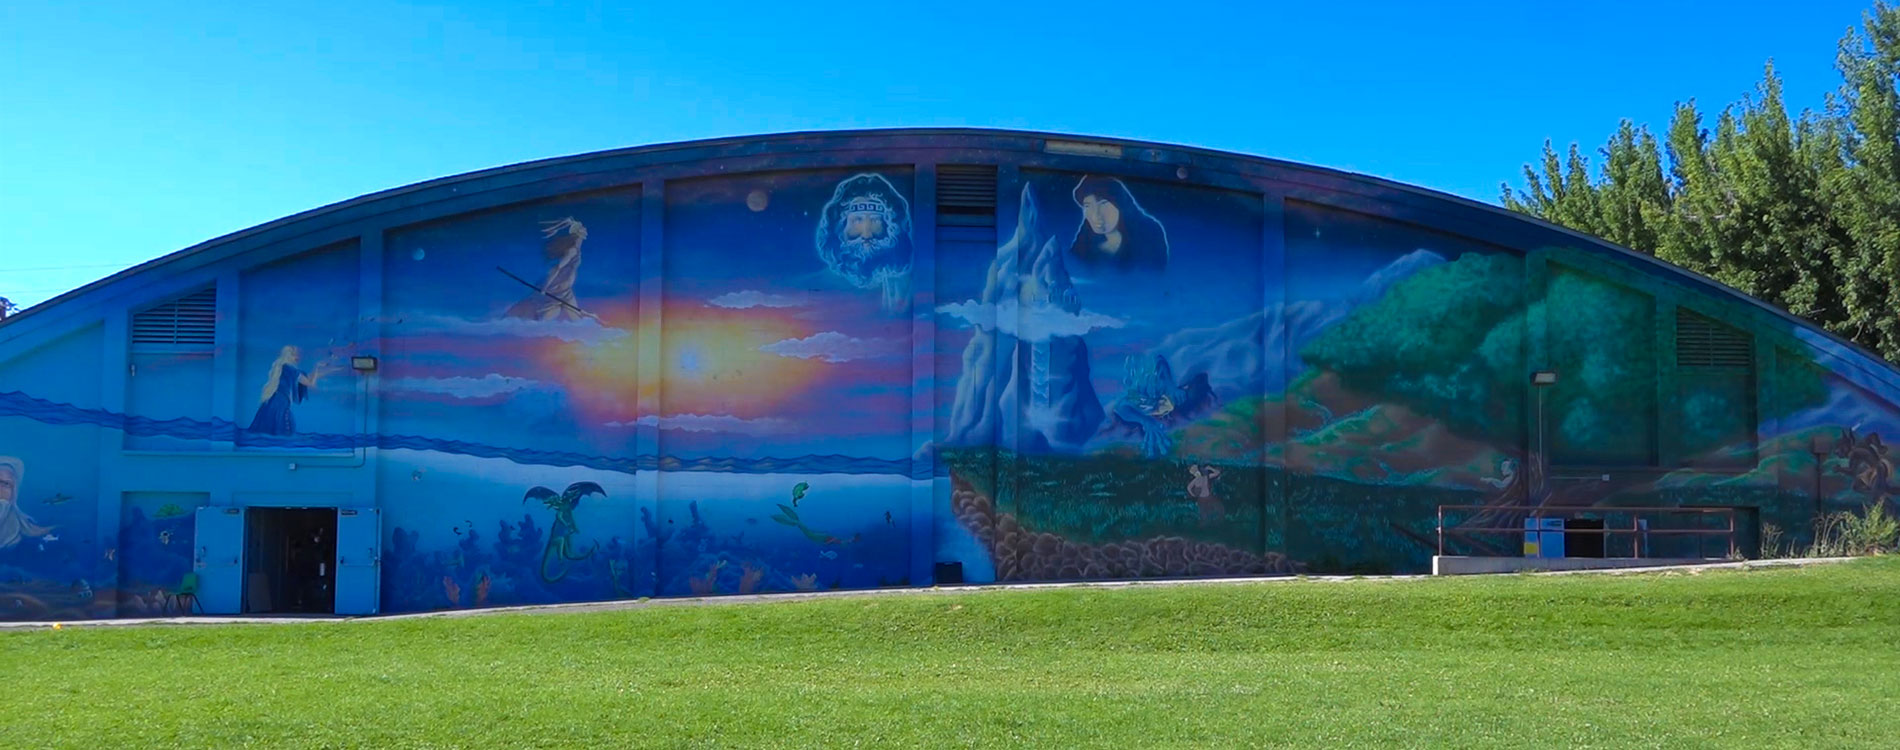 Plumas Park Mural showing greek mythology images